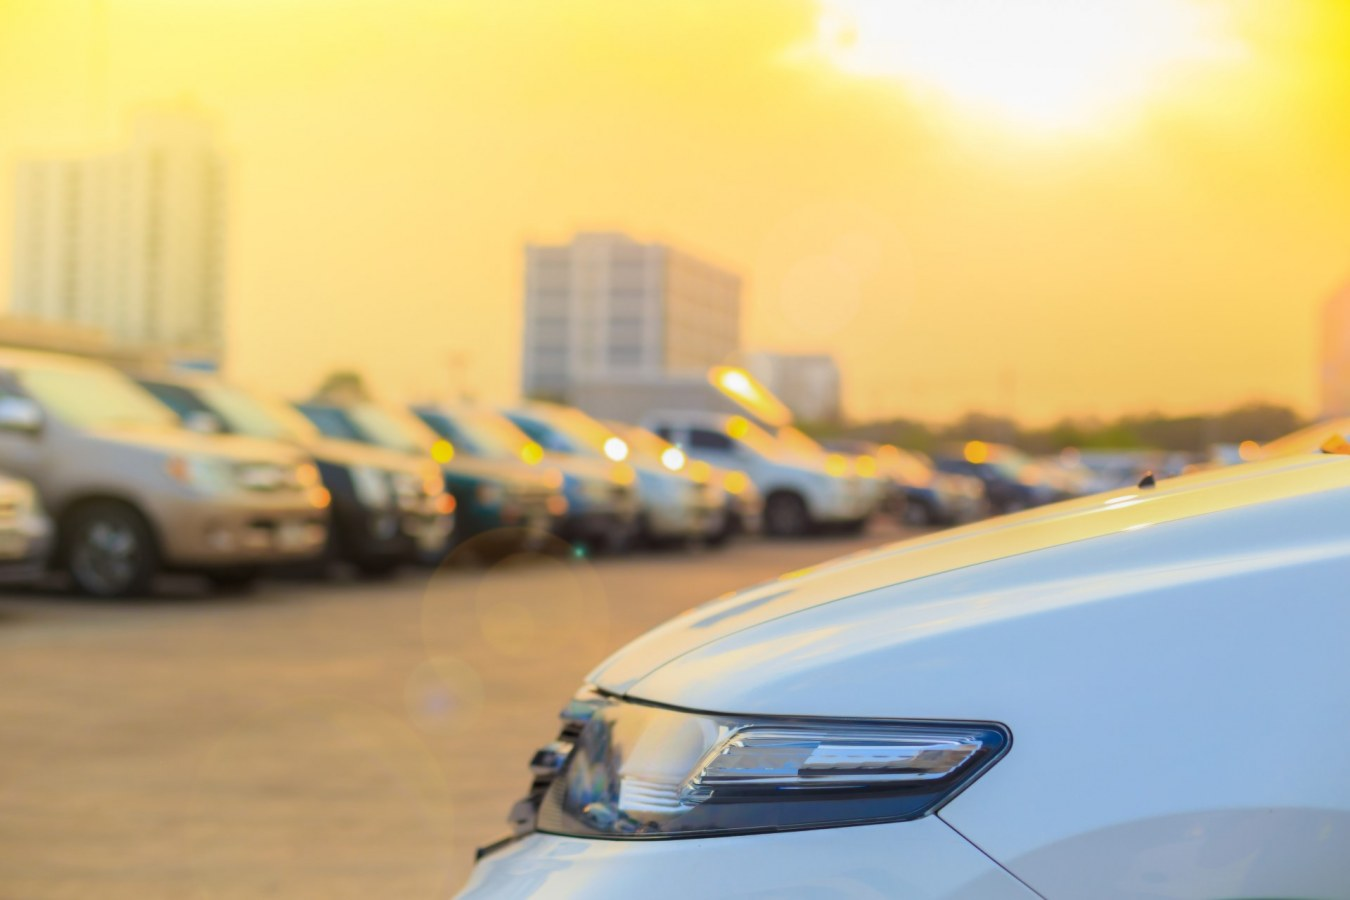 cars parked under scorching sun